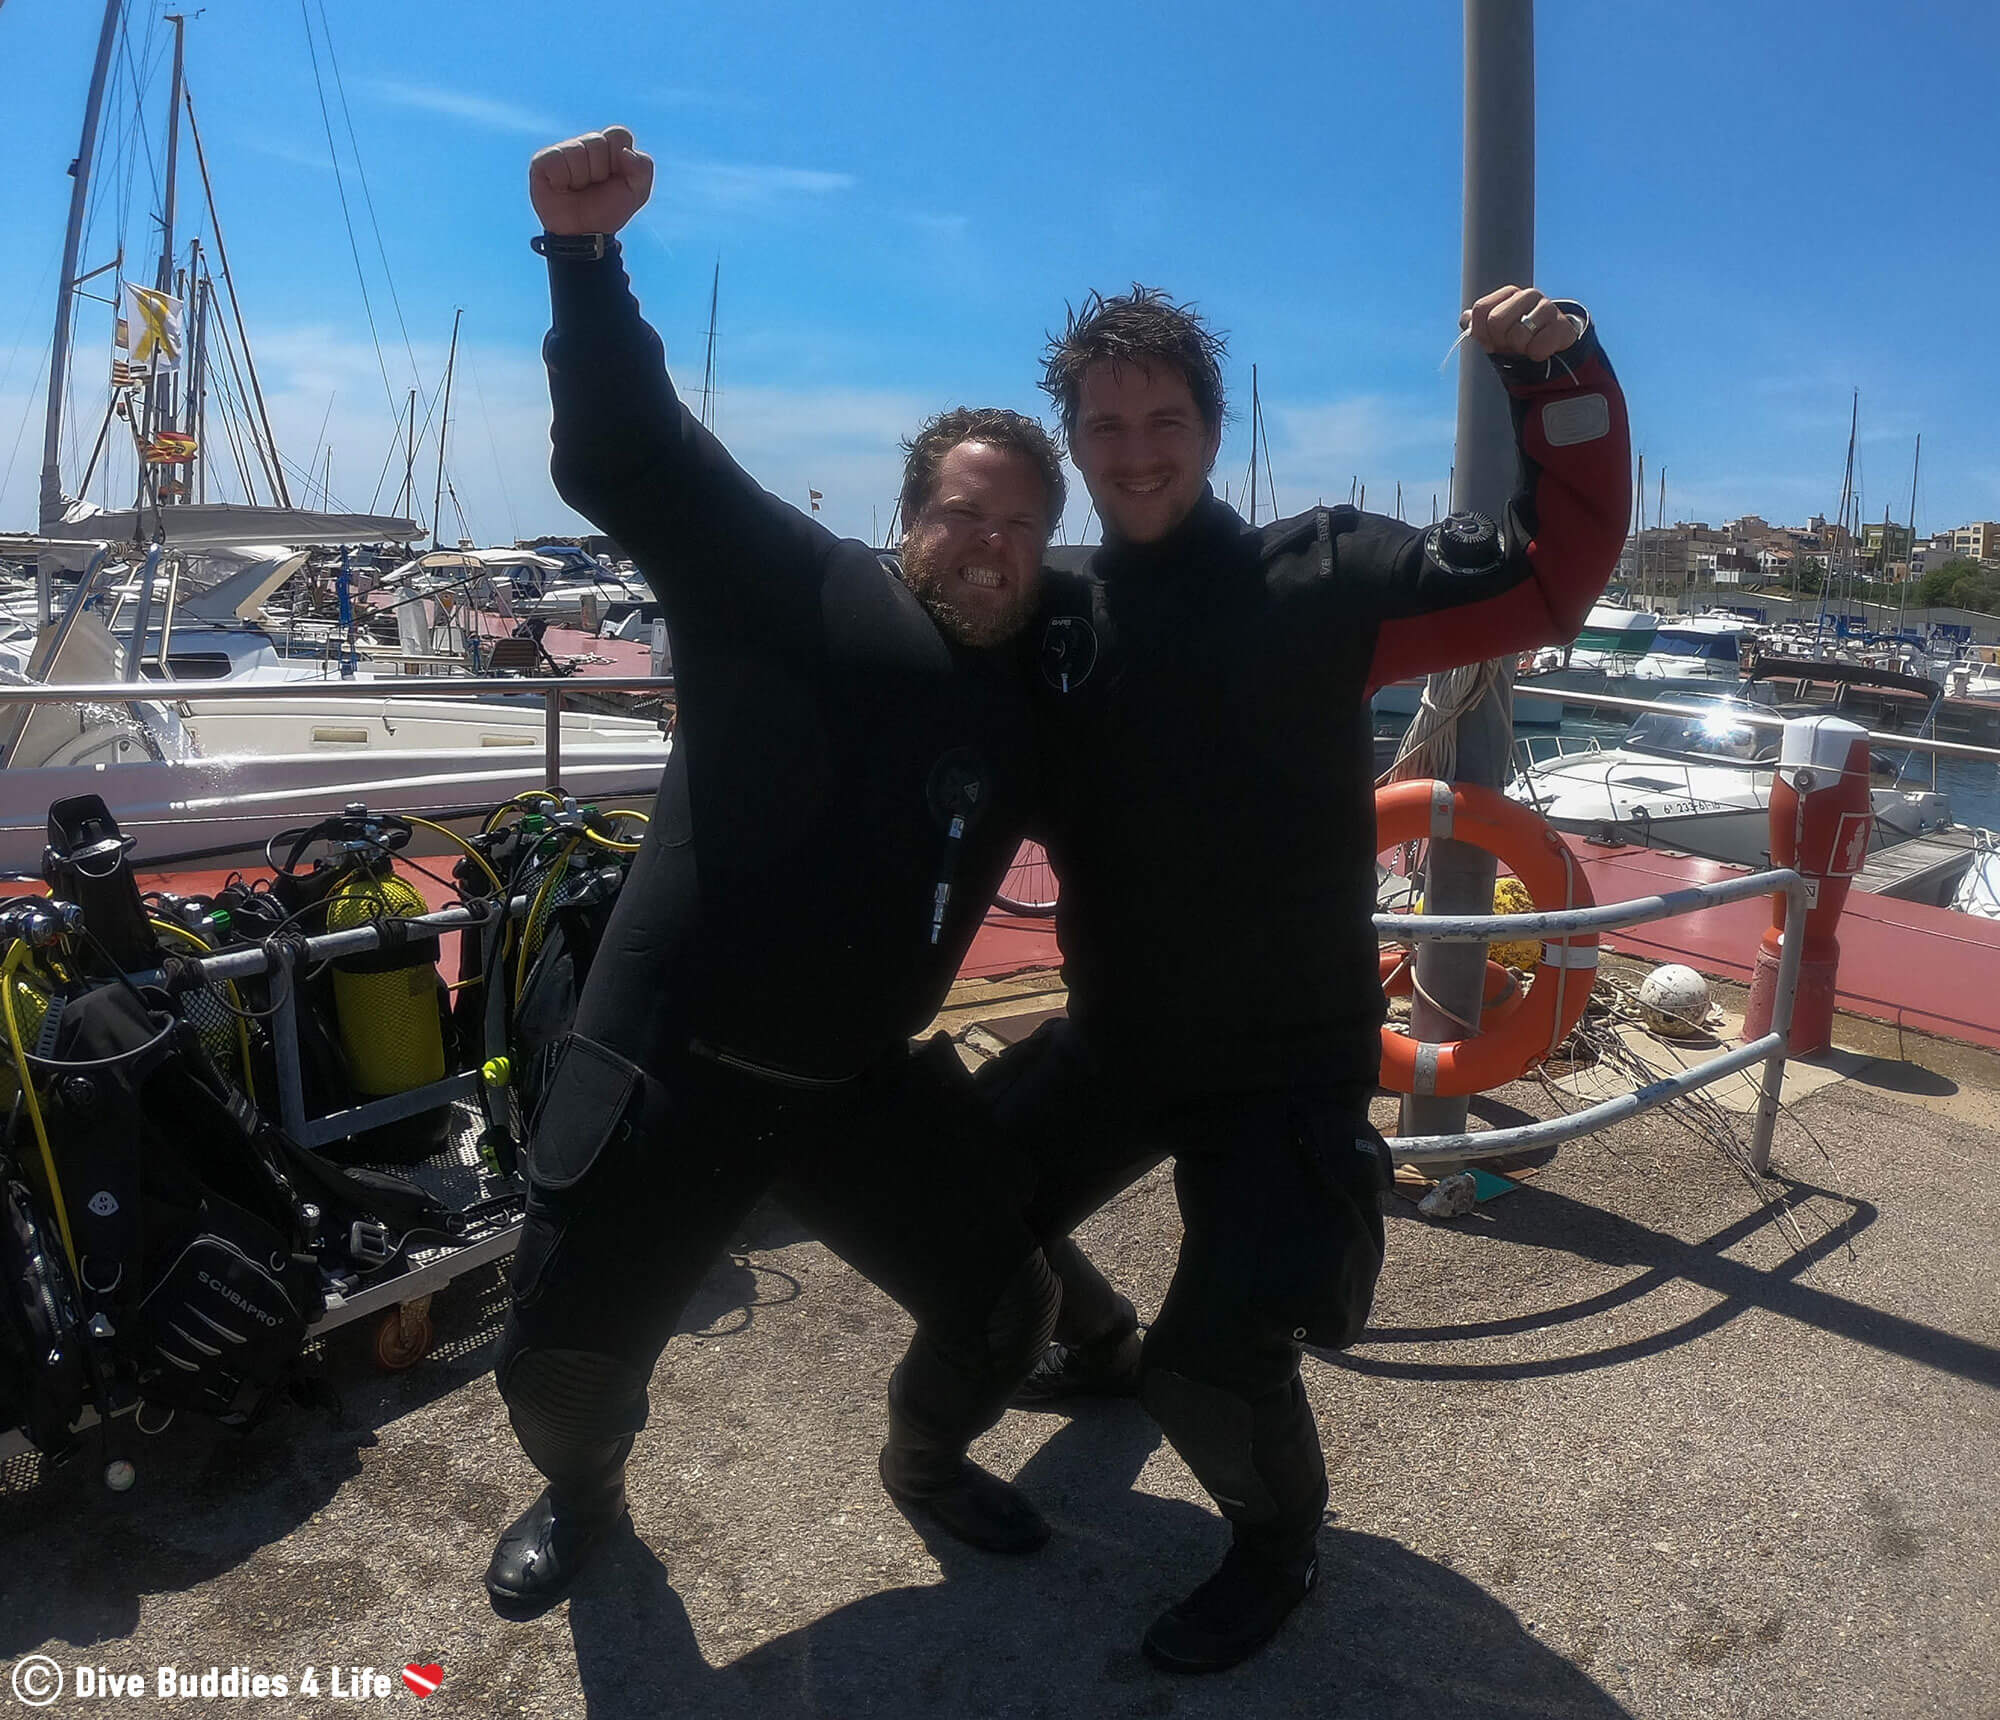 Joey And the Divemaster after a Dive In Costa Brava, Spain